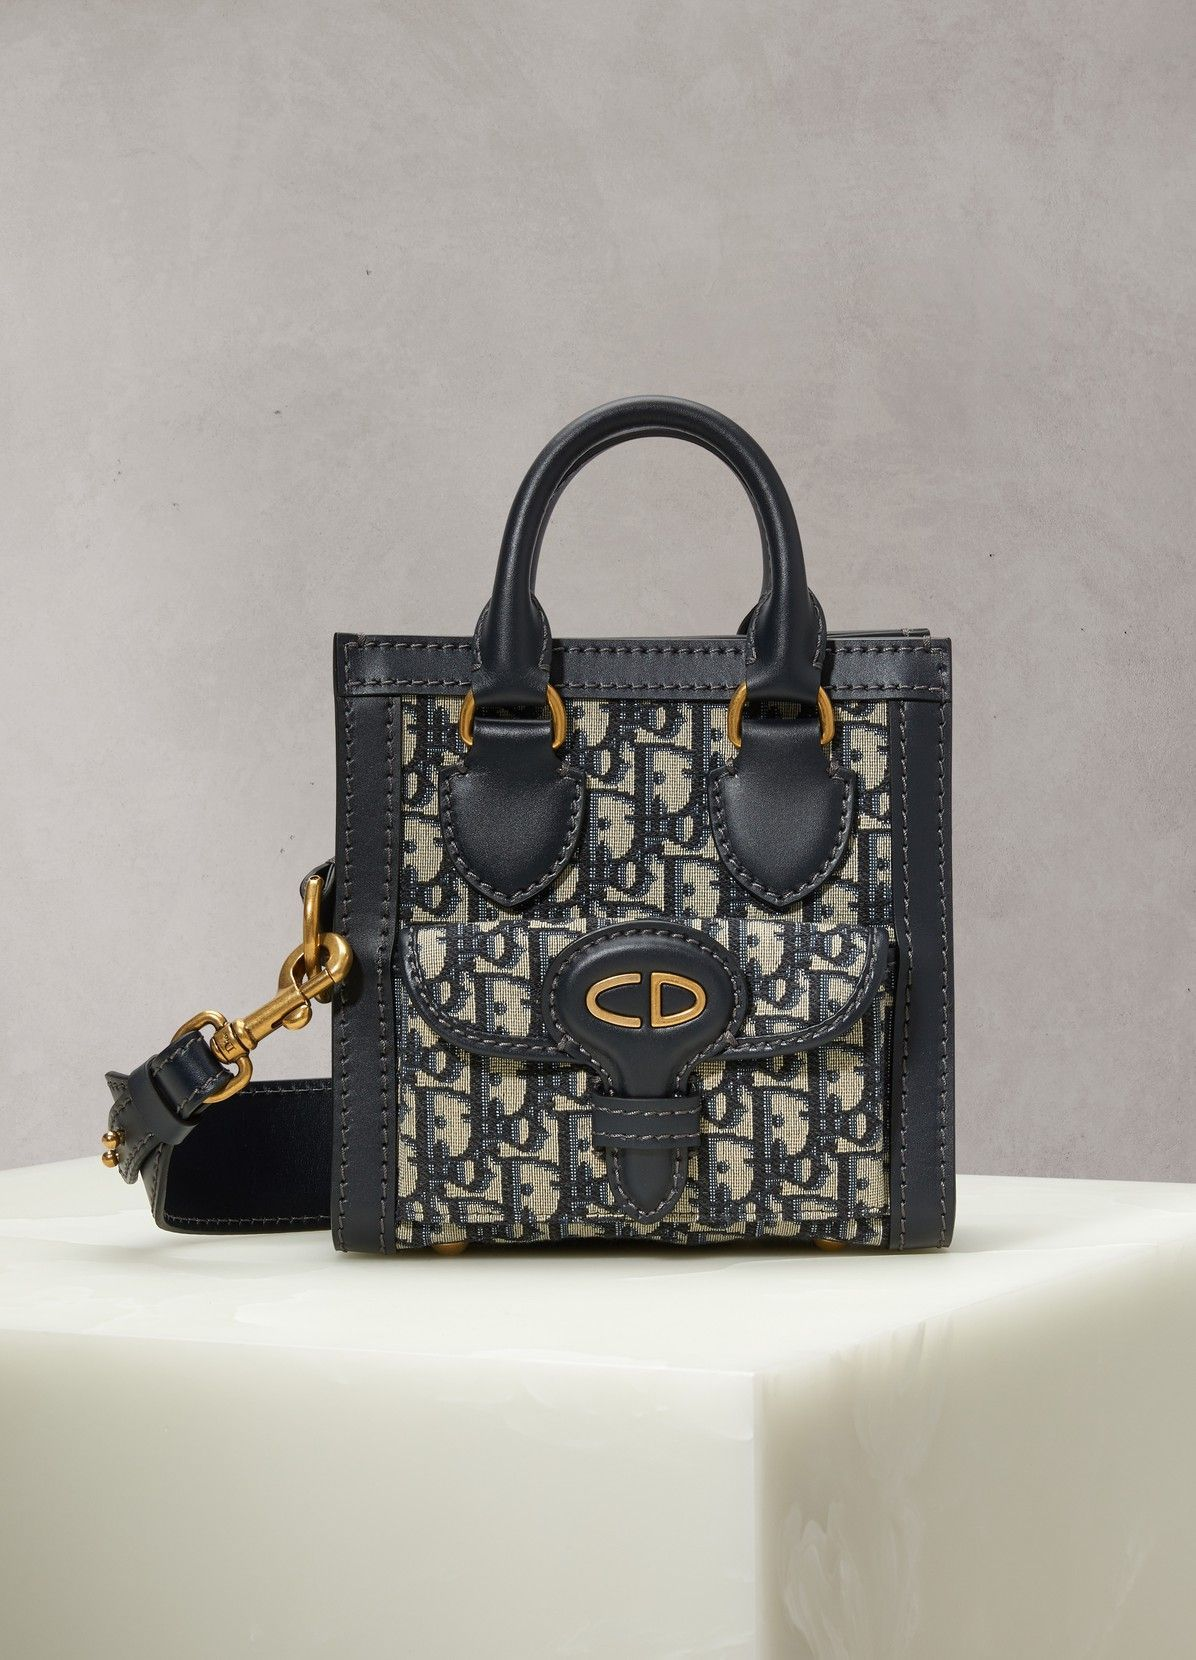 0940fe103b The Dior Oblique bag resembles a mini tote bag and is made from the  collection's signature fabric. Its calfskin leather details exemplify the  Parisian ...